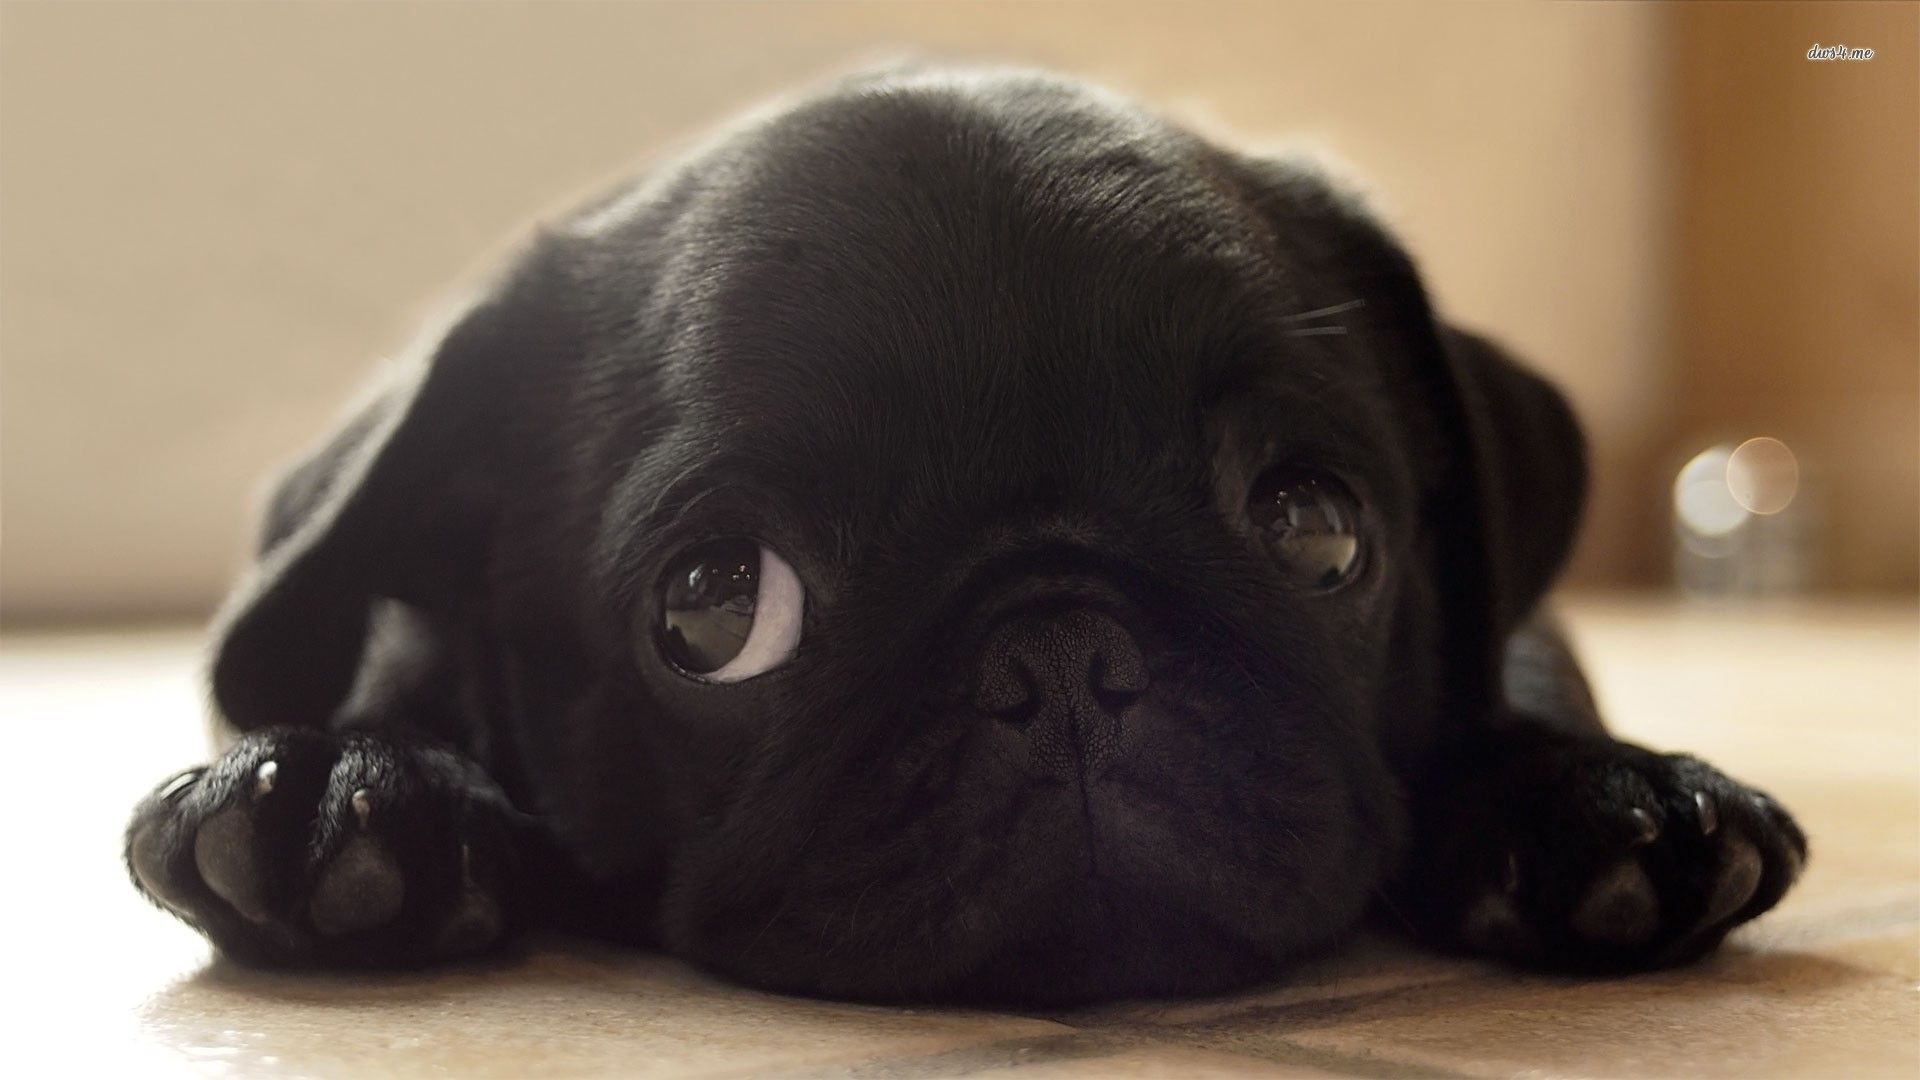 Black Pugs Puppies Wallpaper Pug Dog Pictures Cute Baby Pugs Black Pug Puppies